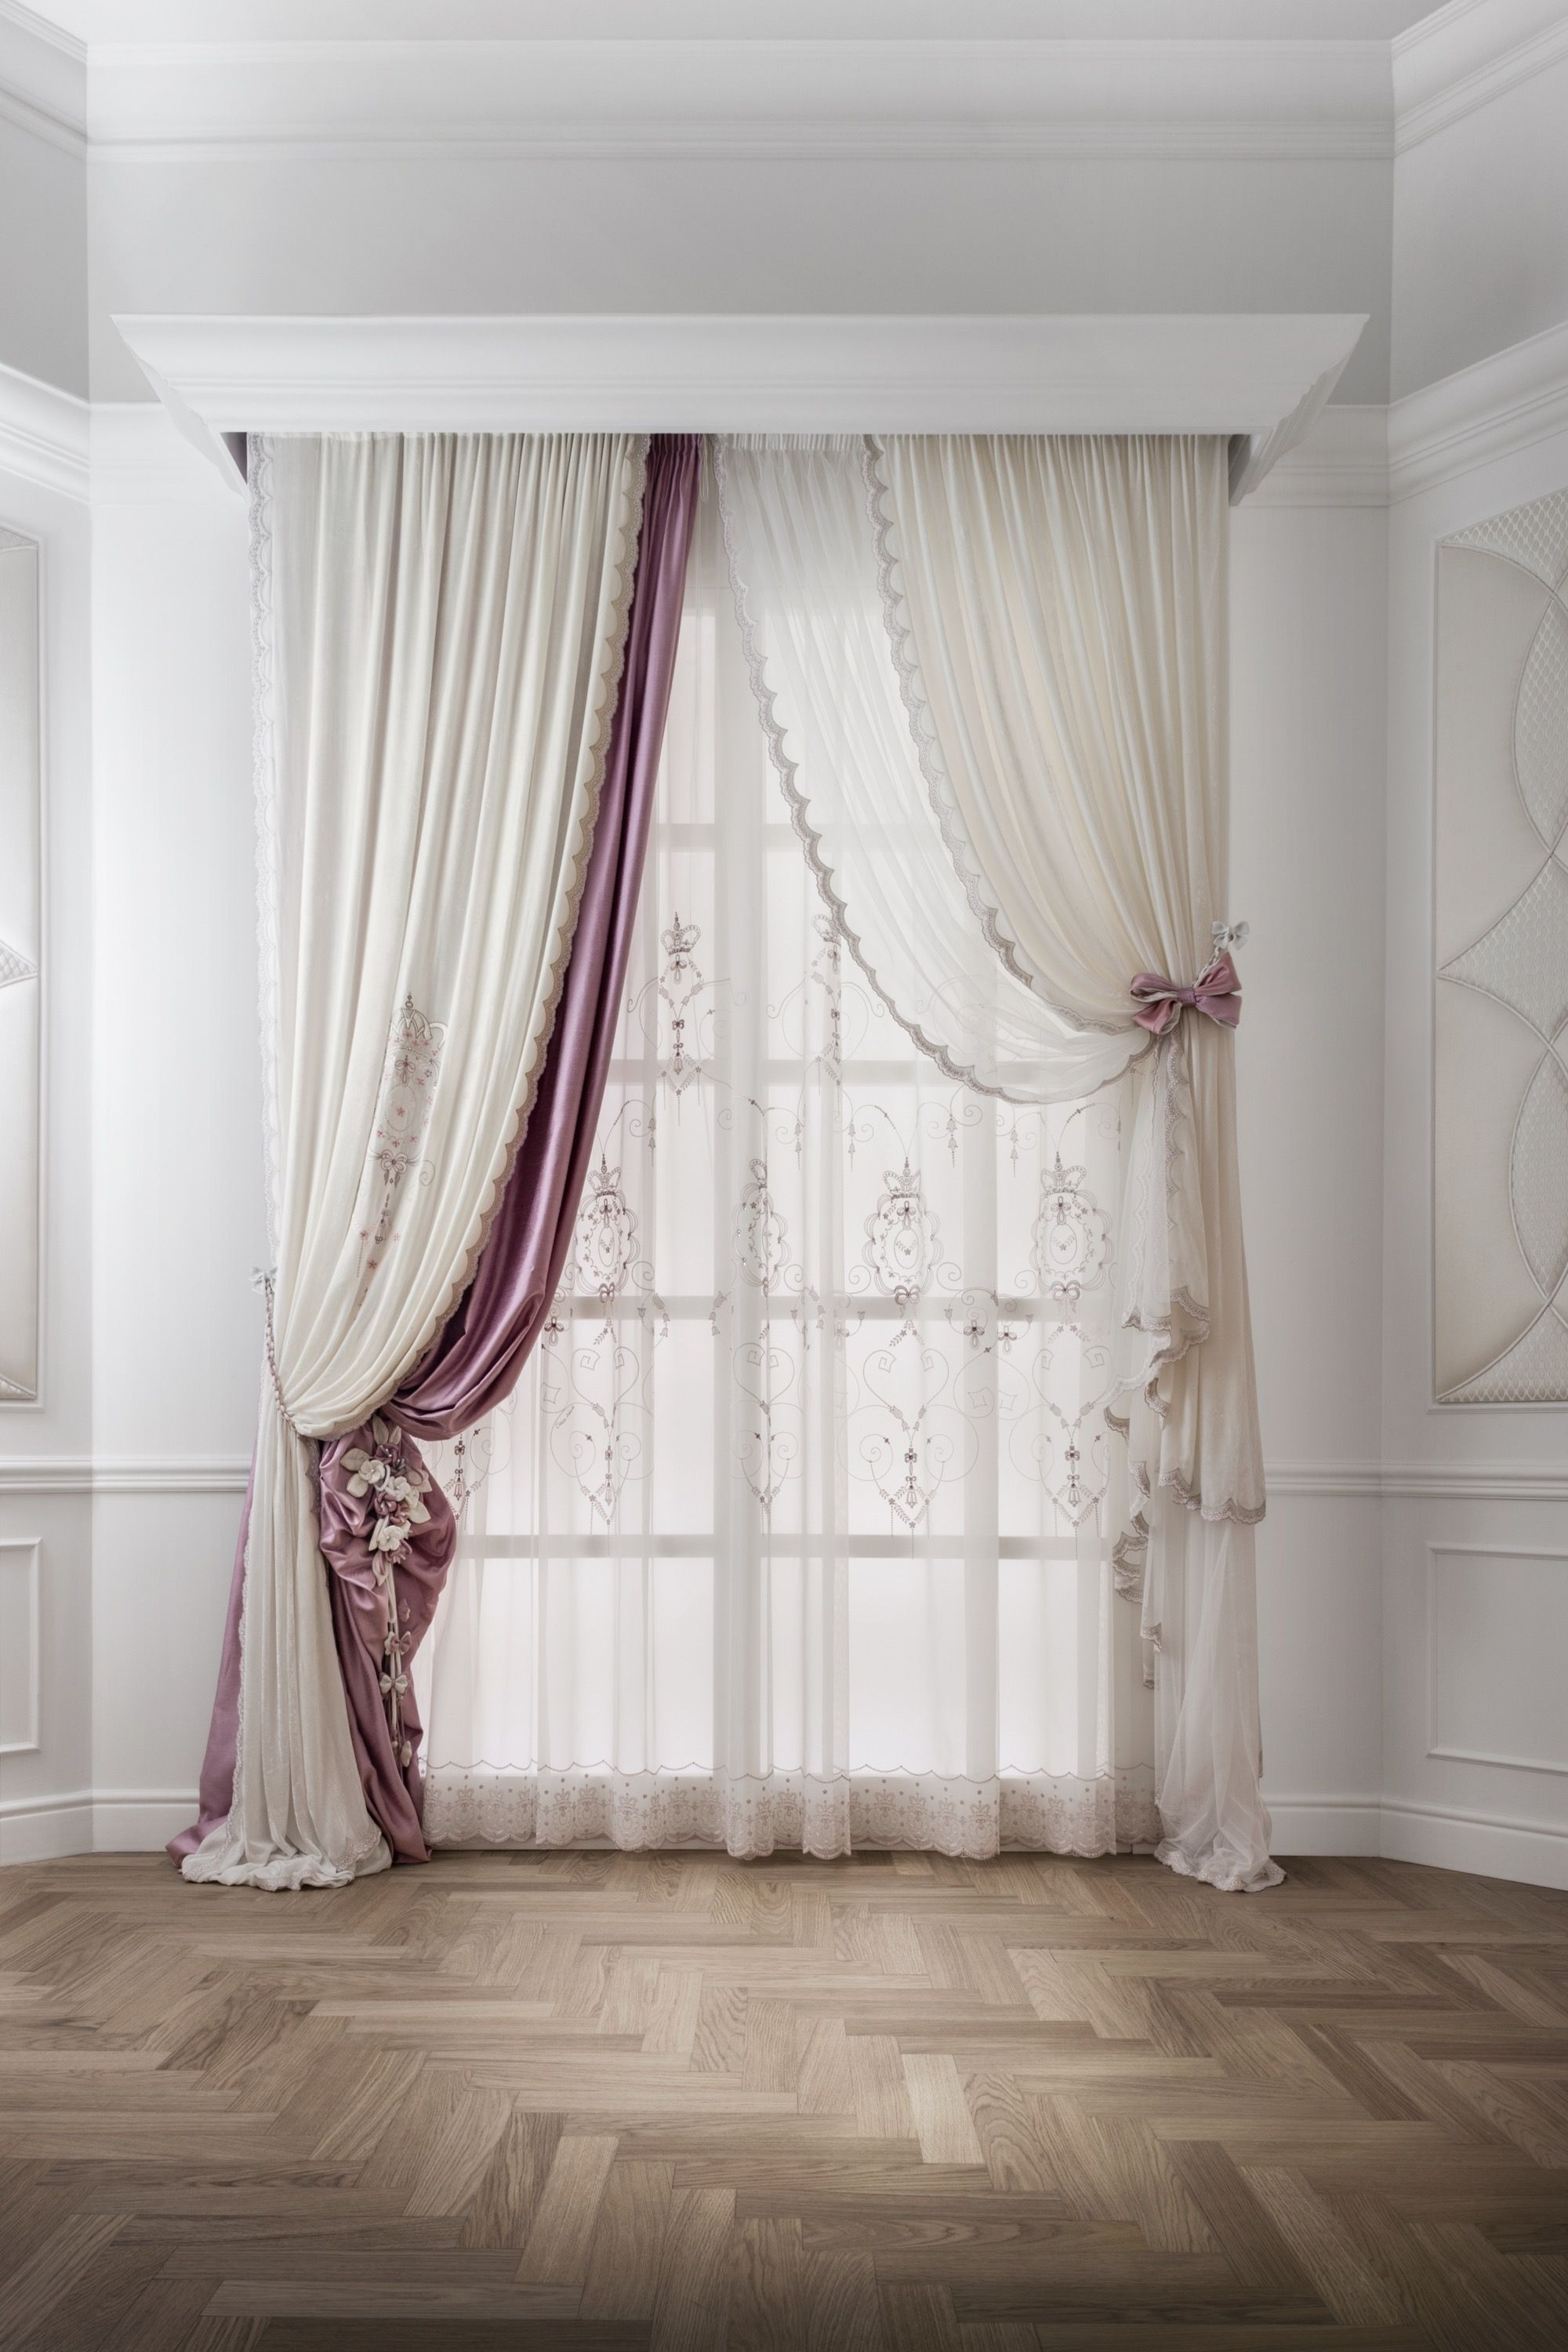 drape curtains for striped treatments bay and decor curtain interesting window cheap scarves drapes beige how tapestry to grey sears ideas covering windows arched